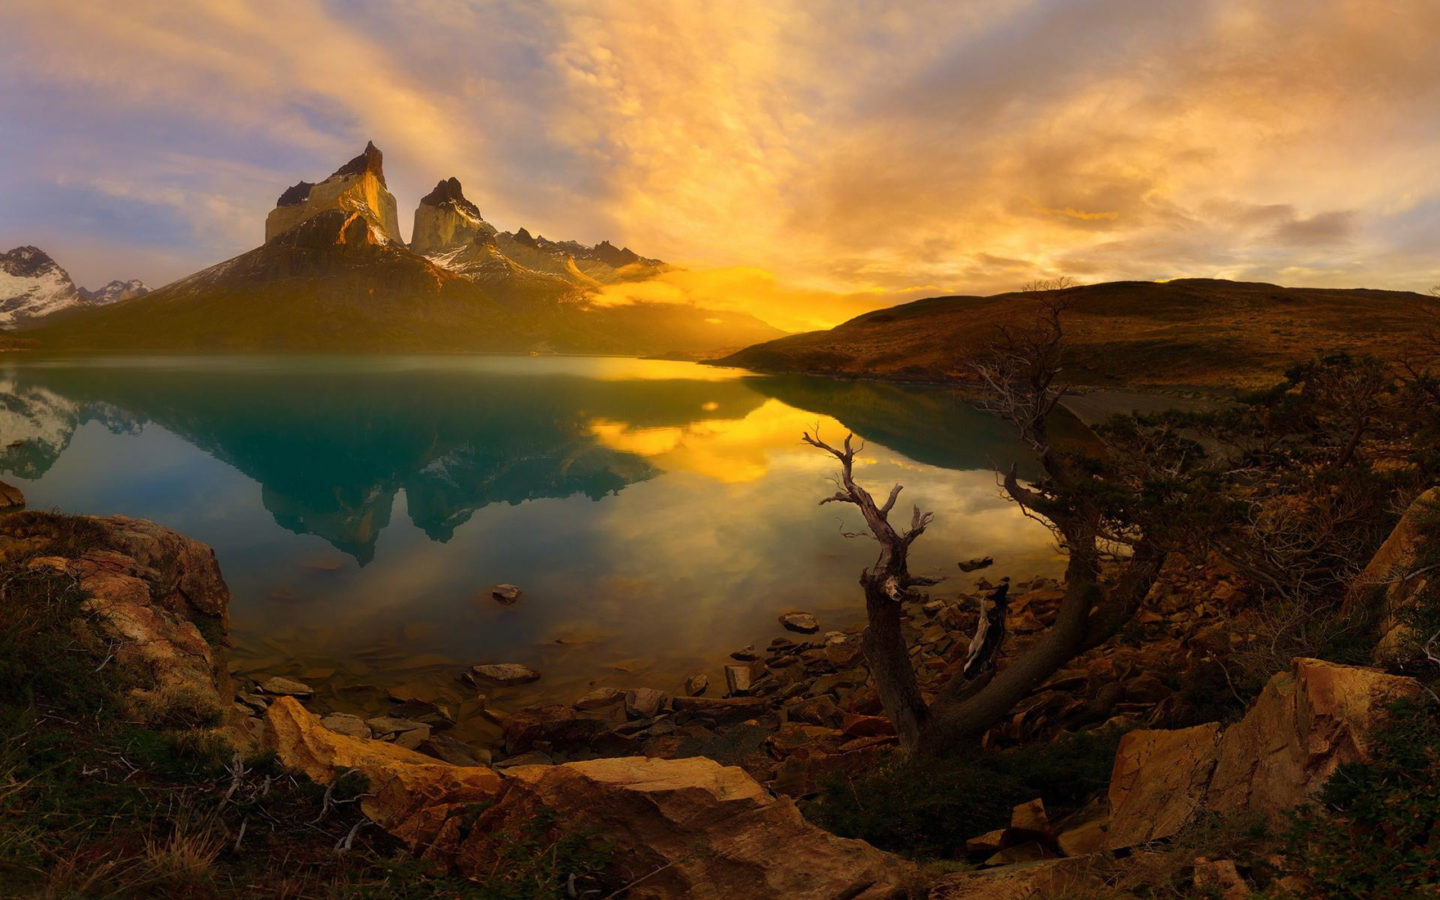 Free Android Fall Wallpaper Sunset National Park Torres Del Paine Patagonia 2560x1600